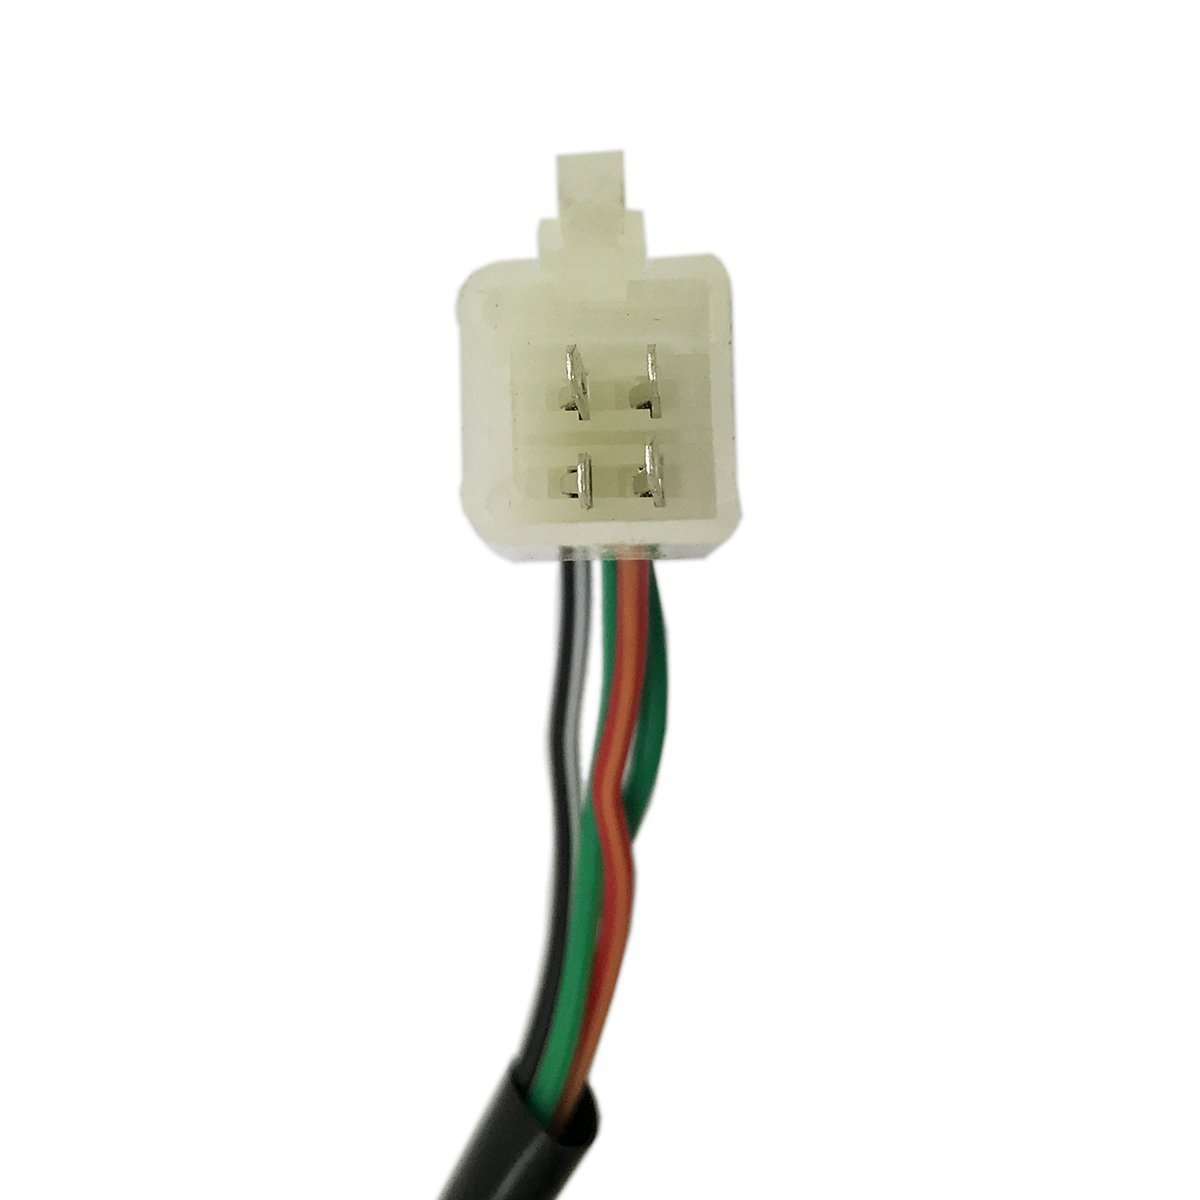 MMG Right Side RH Starter Switch Electric Starter Button plus Kill Switch for Scooters 50cc 4 Wires//Pin Connector